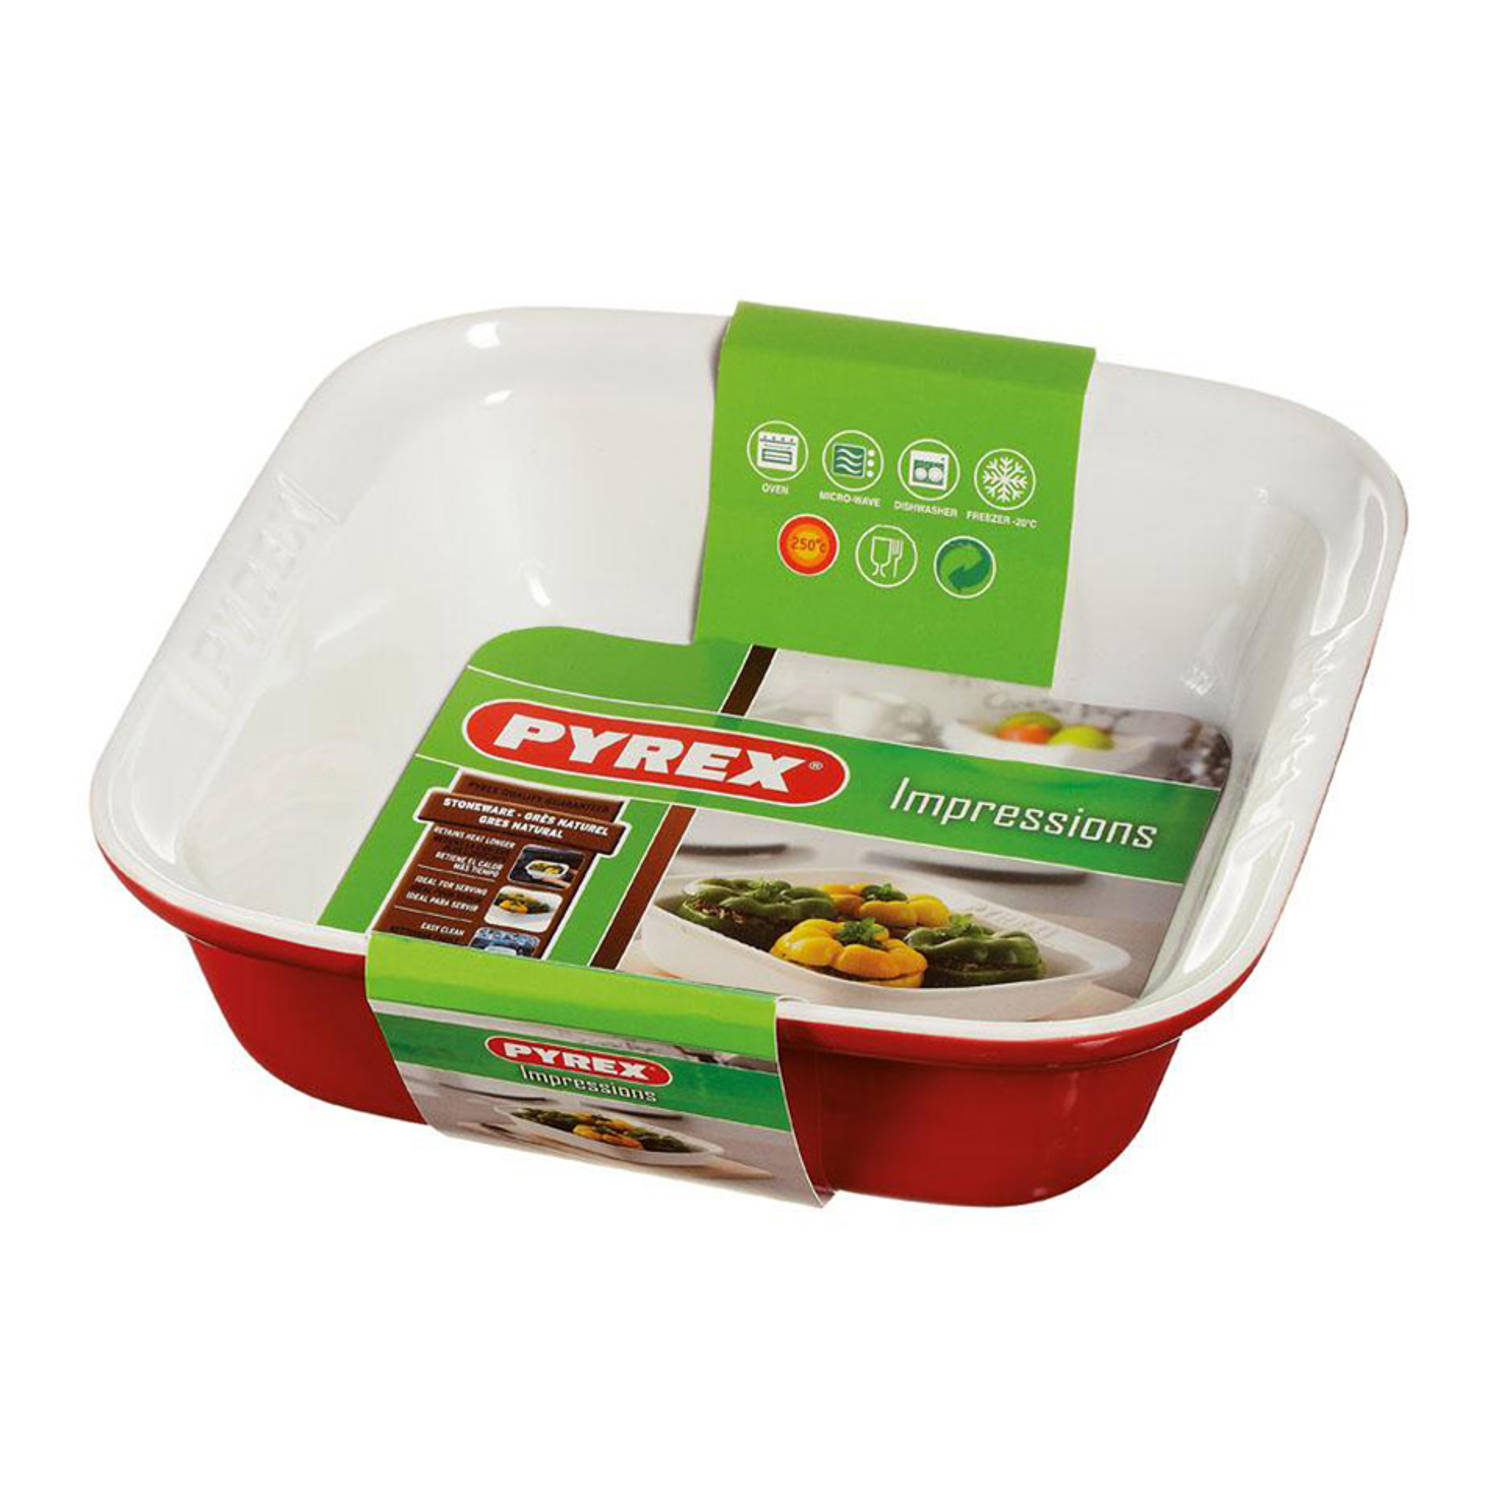 Pyrex Impressions ovenschaal - 24 x 24 cm - rood